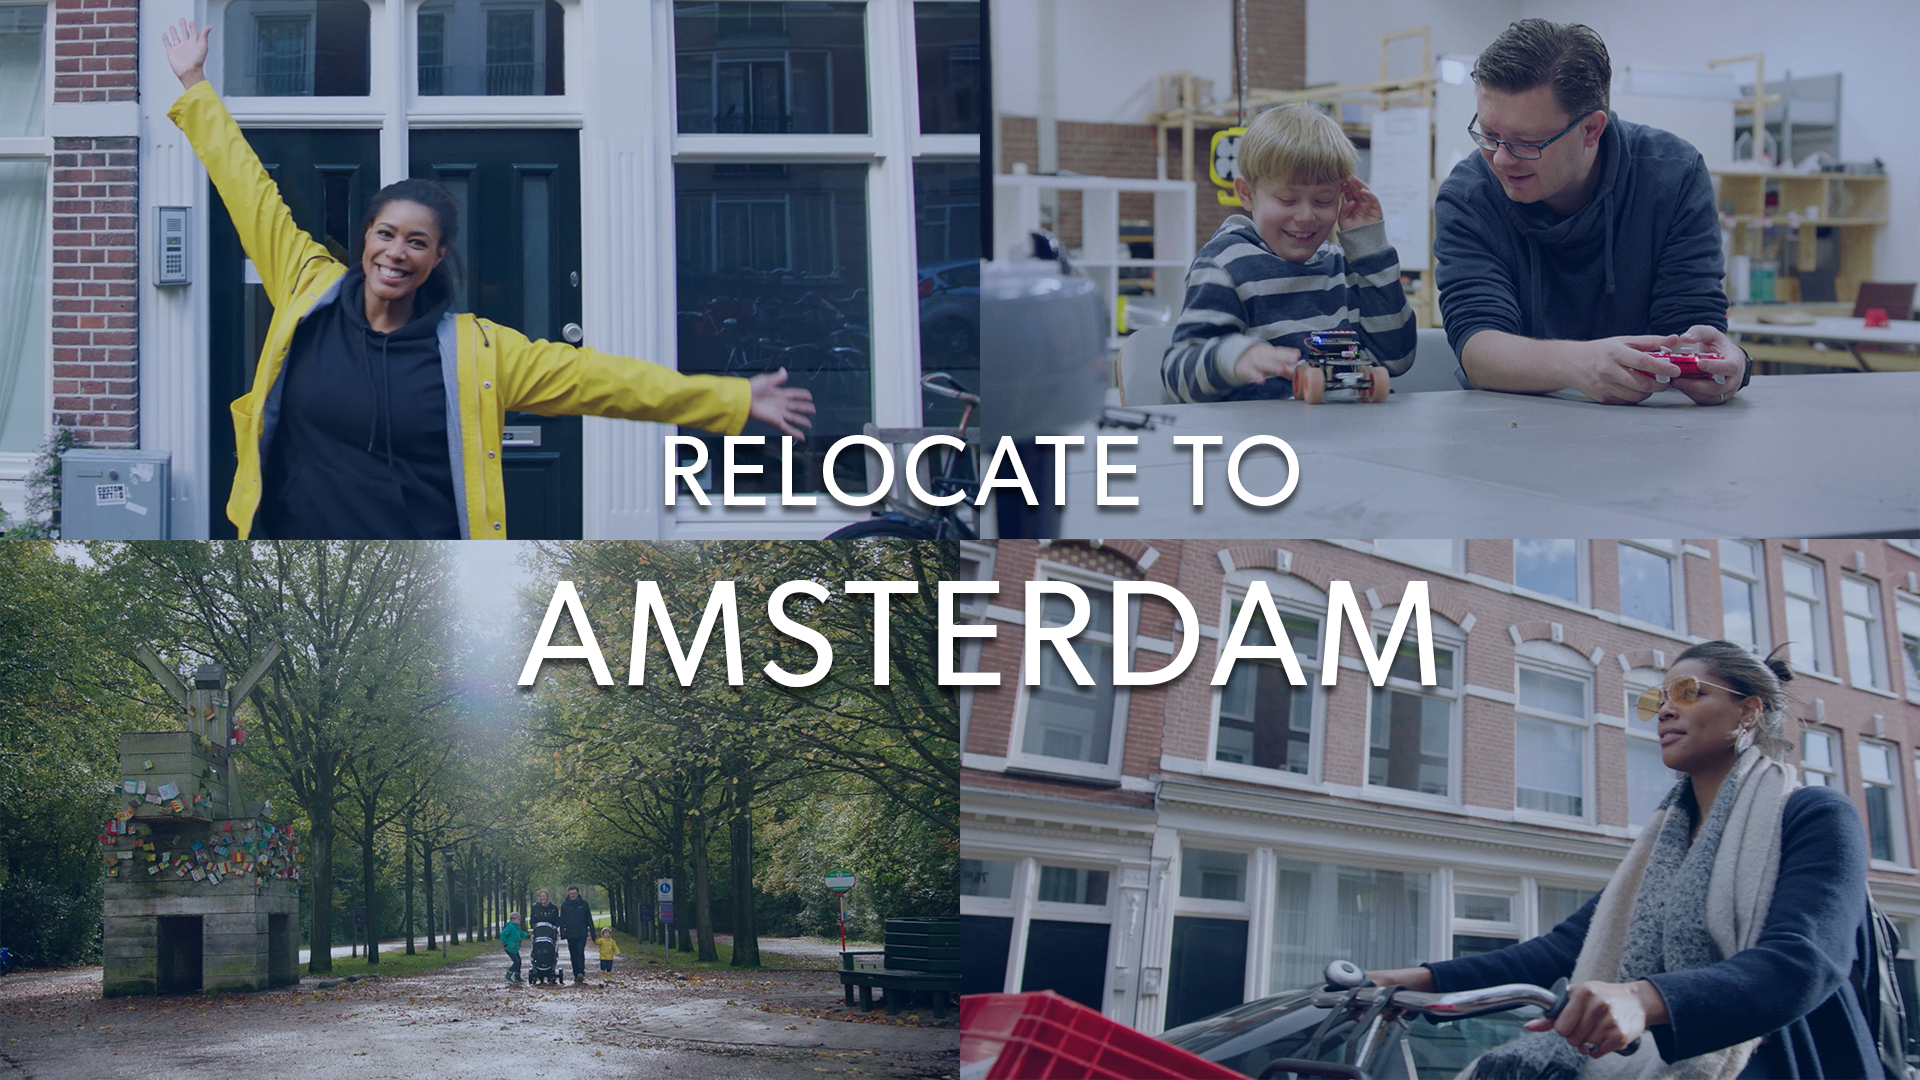 Relocation to Amsterdam